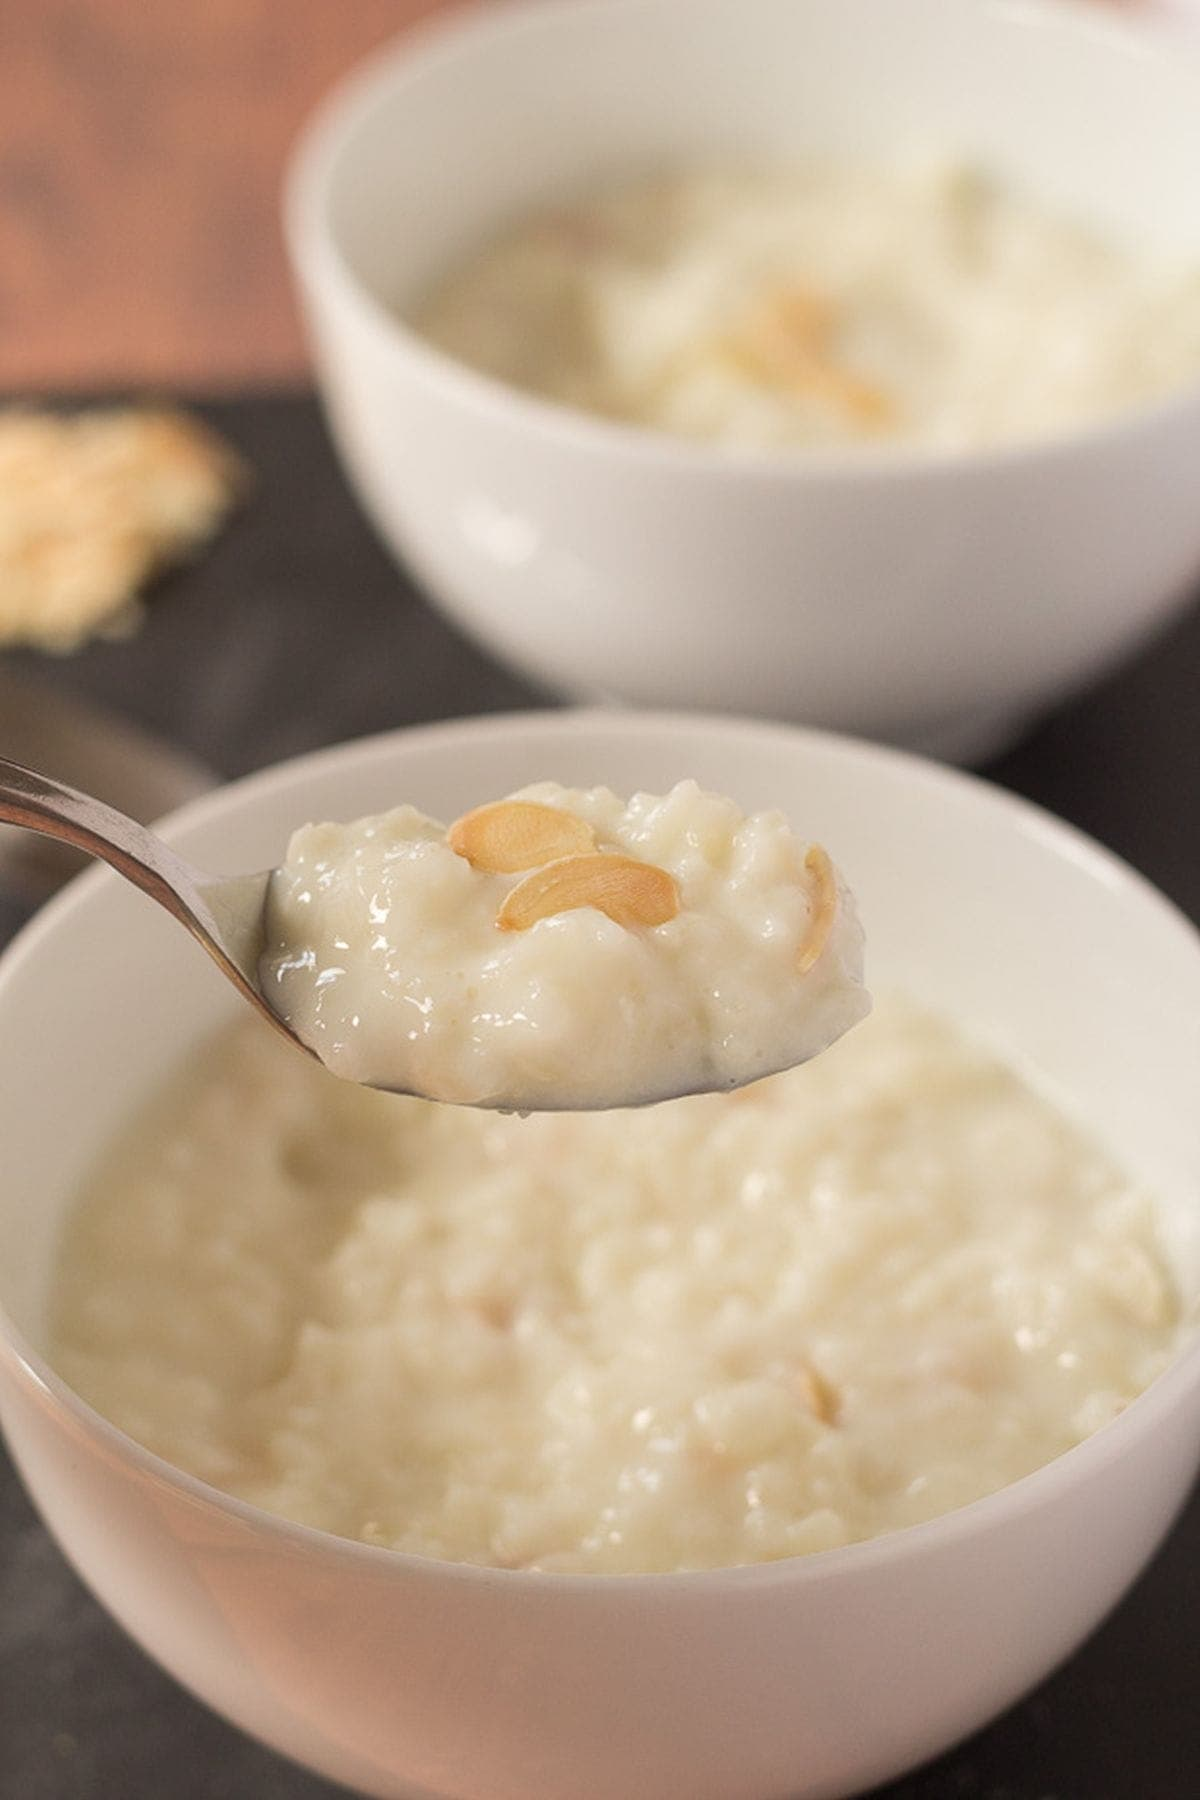 Two bowls of easy rice pudding one in front of the other. A spoon lifting out a portion of the front bowl.